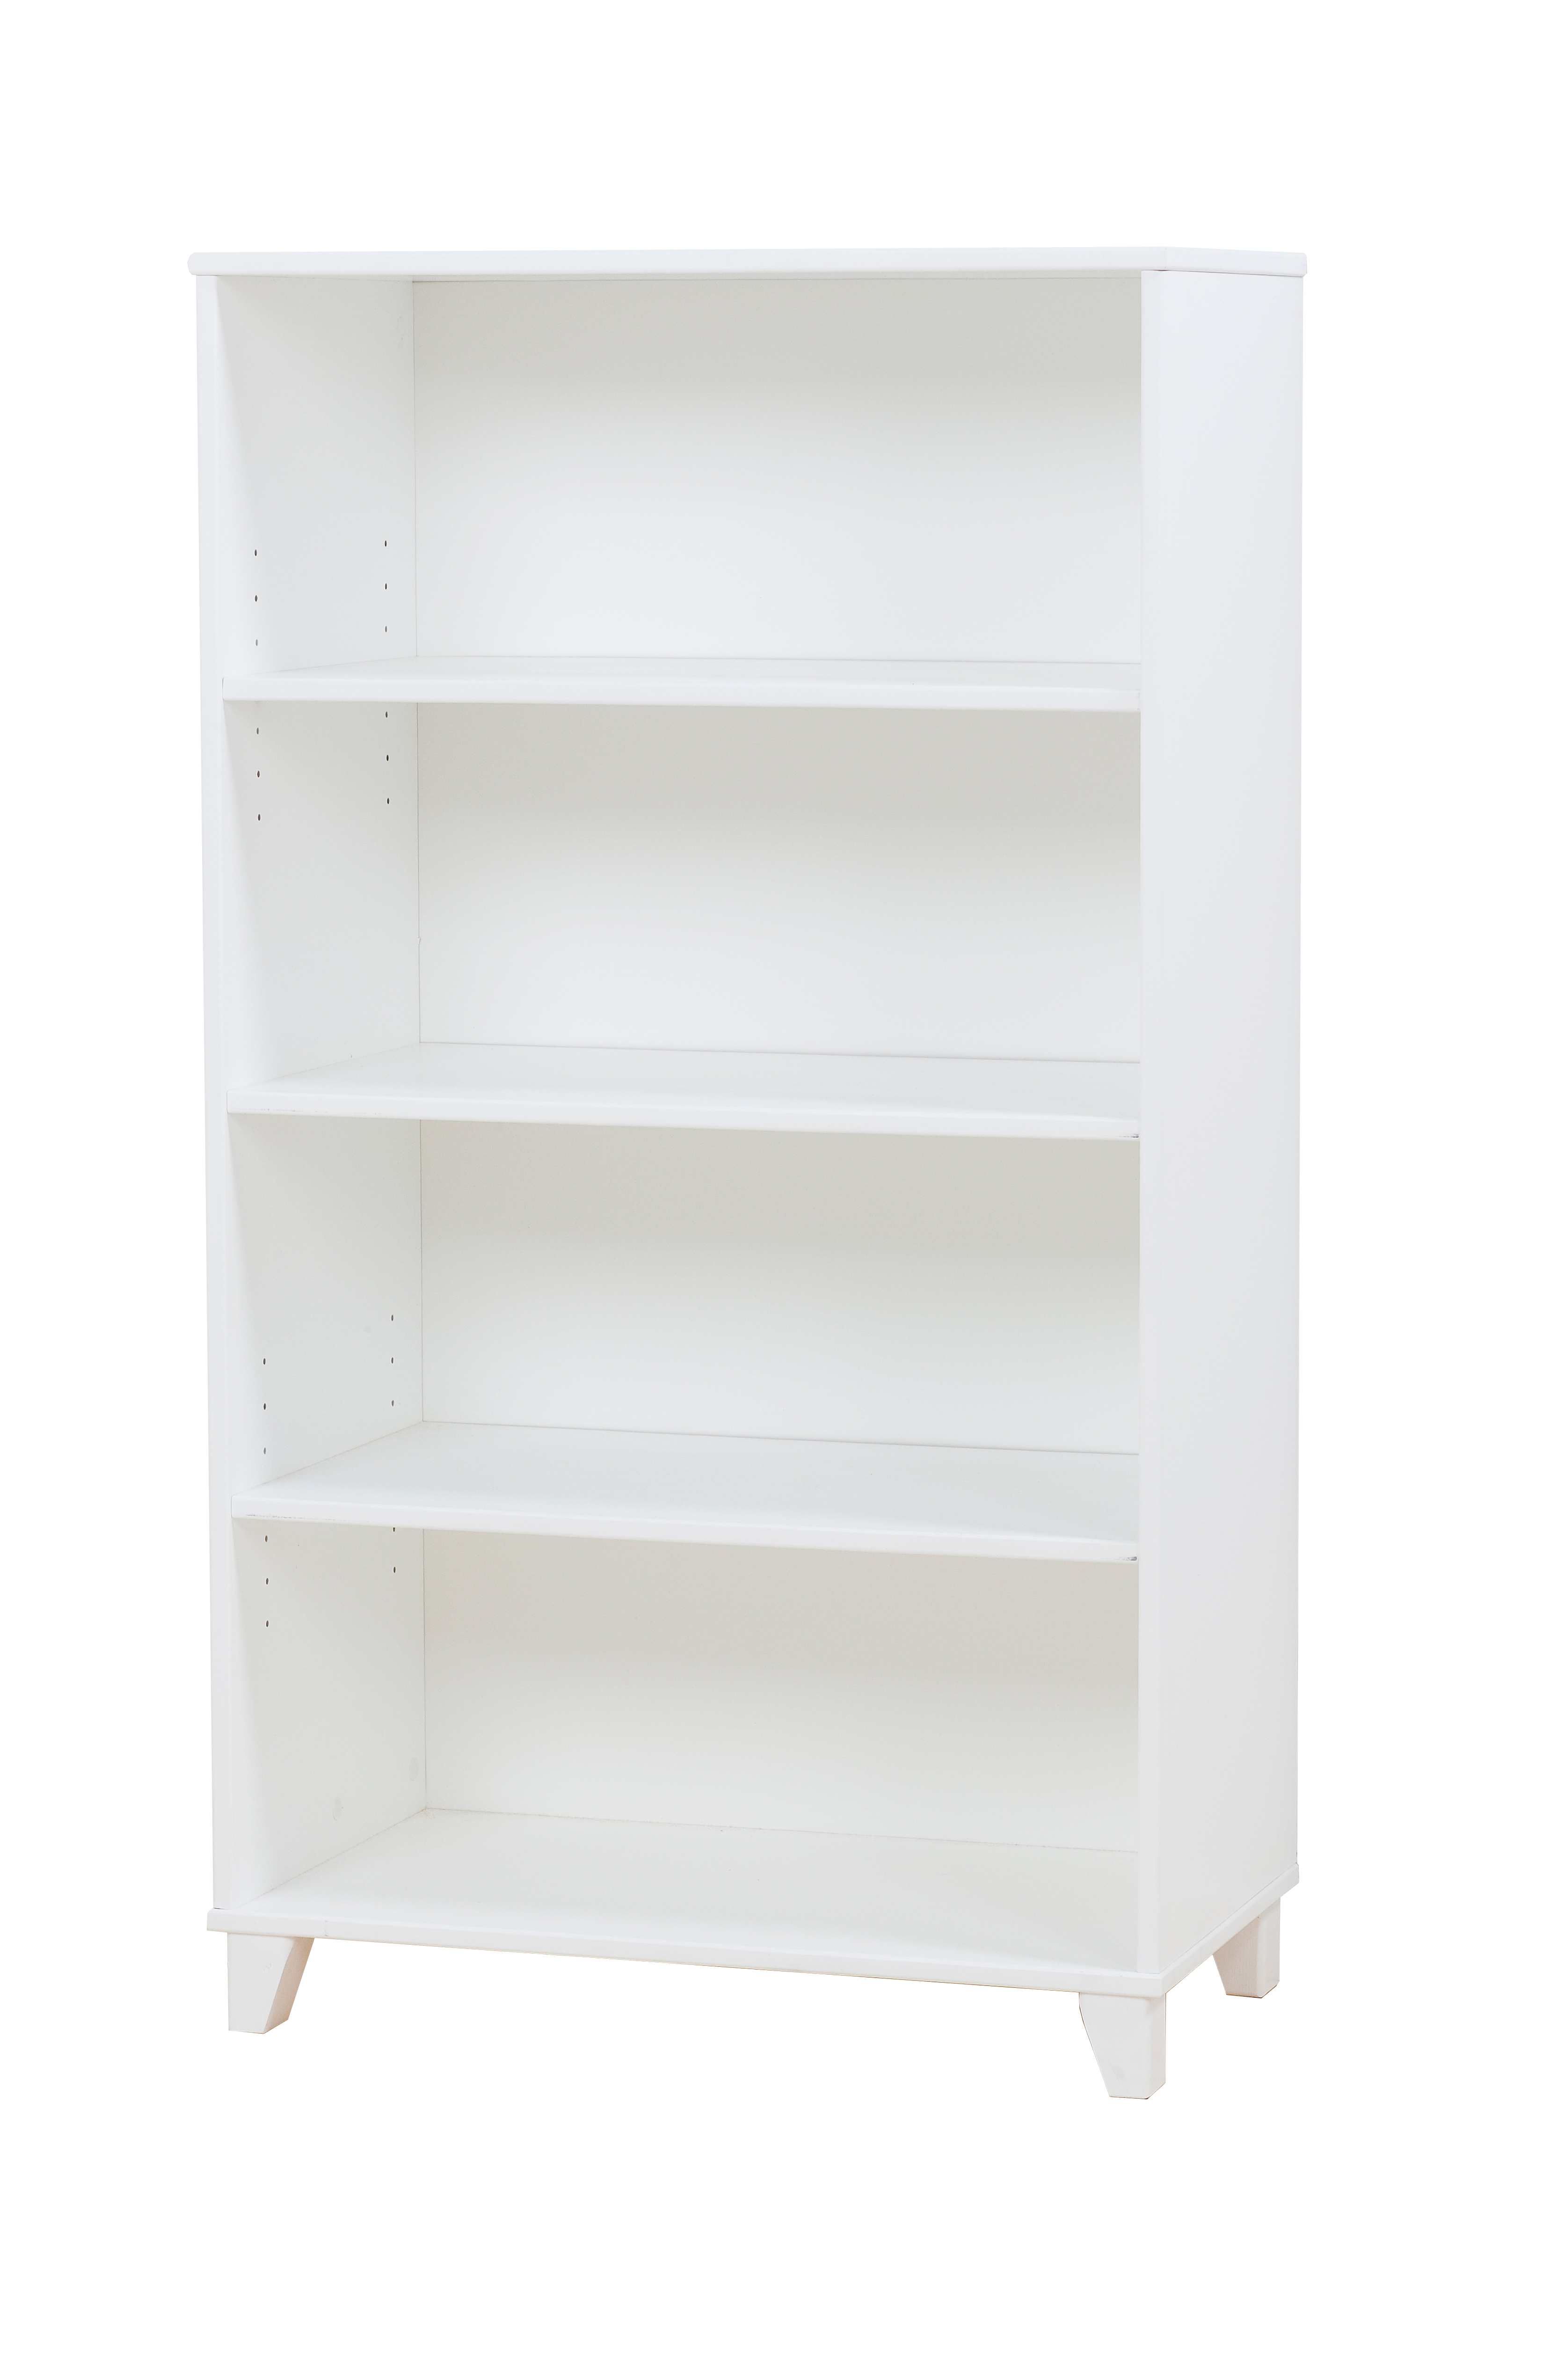 Hoppekids - PETER Bookcase with 3 shelves - White